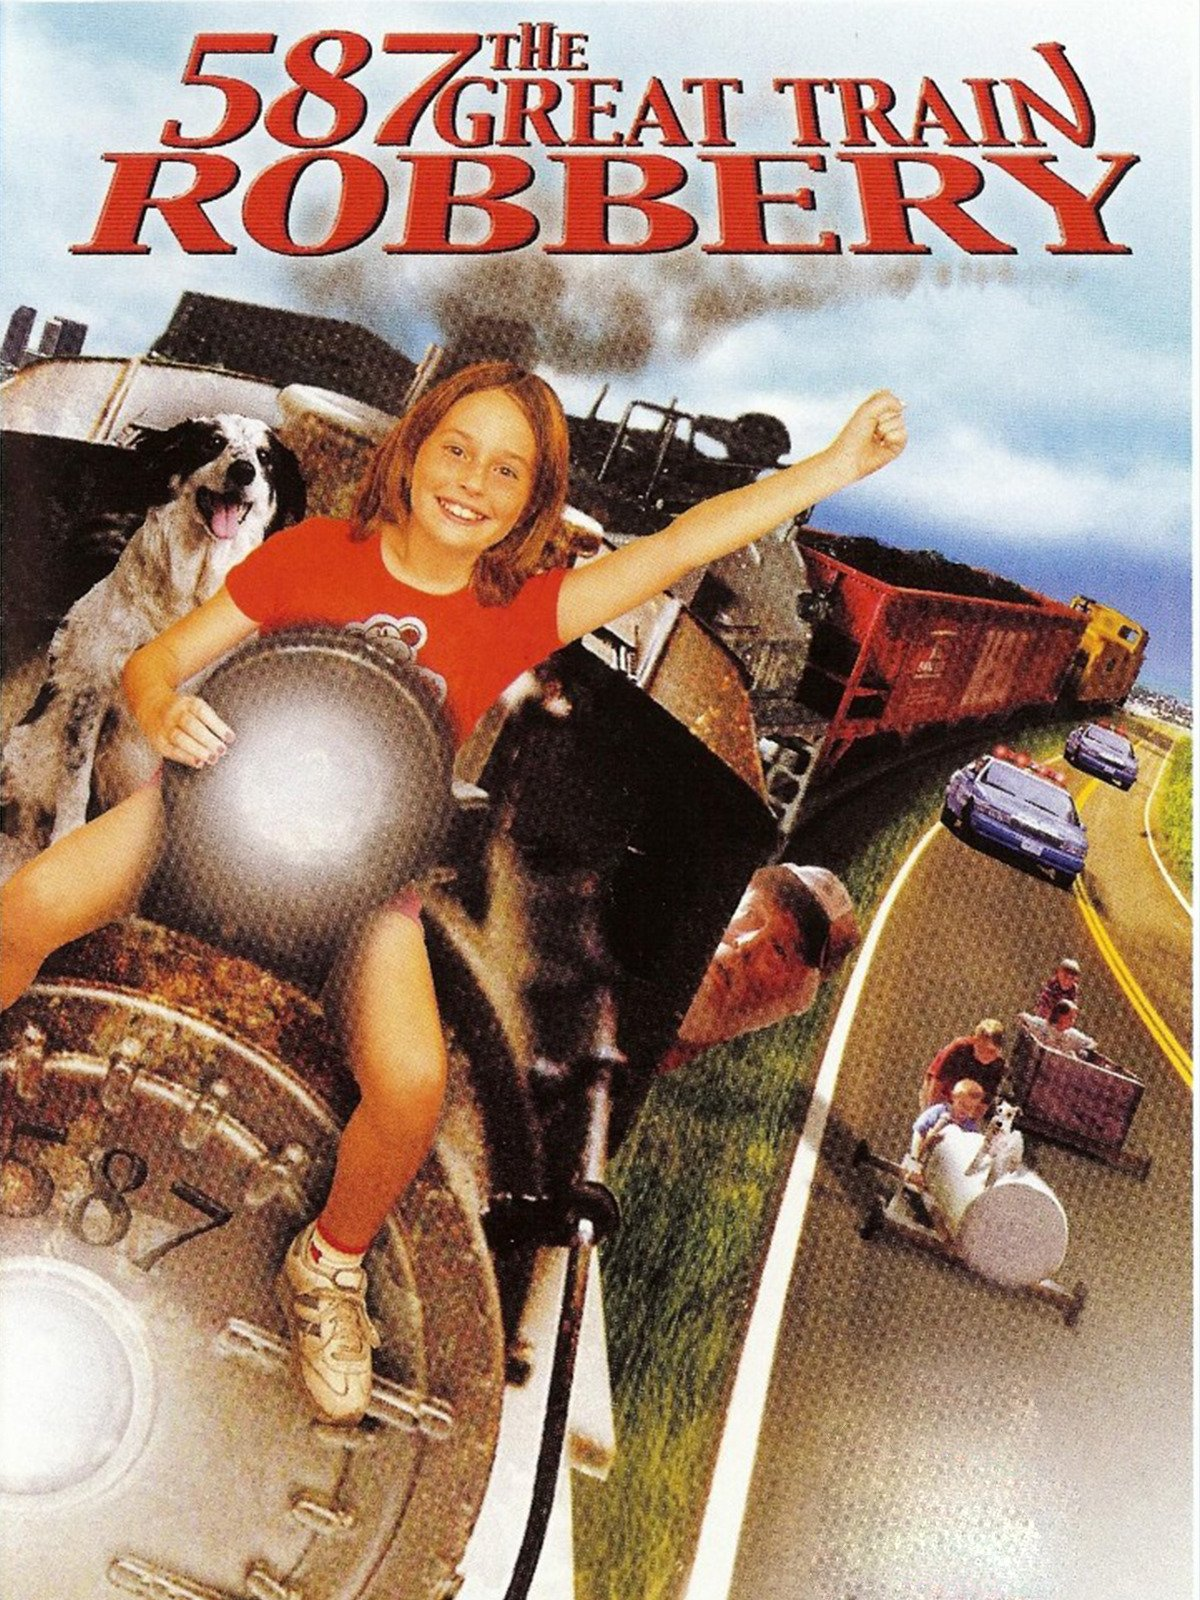 587 The Great Train Robbery